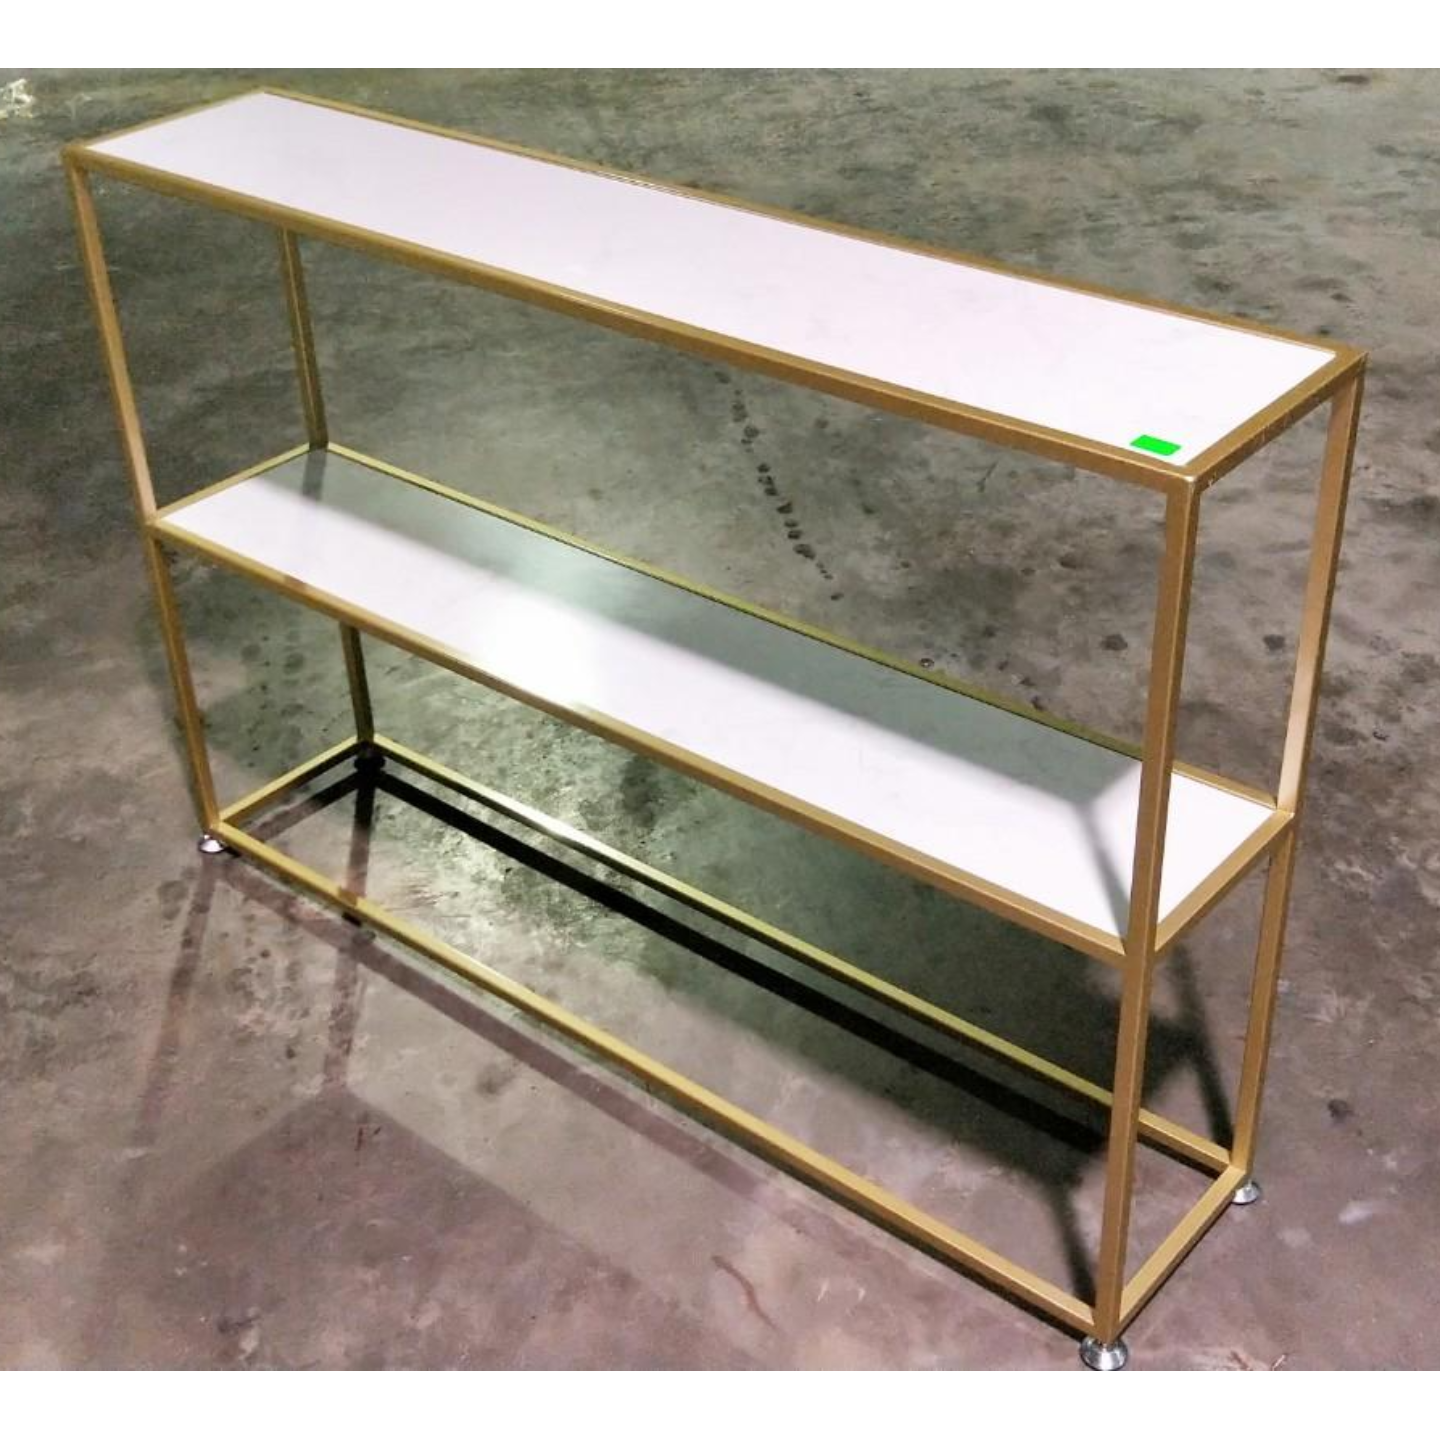 KURGEN Marble Hallway Display Shelf